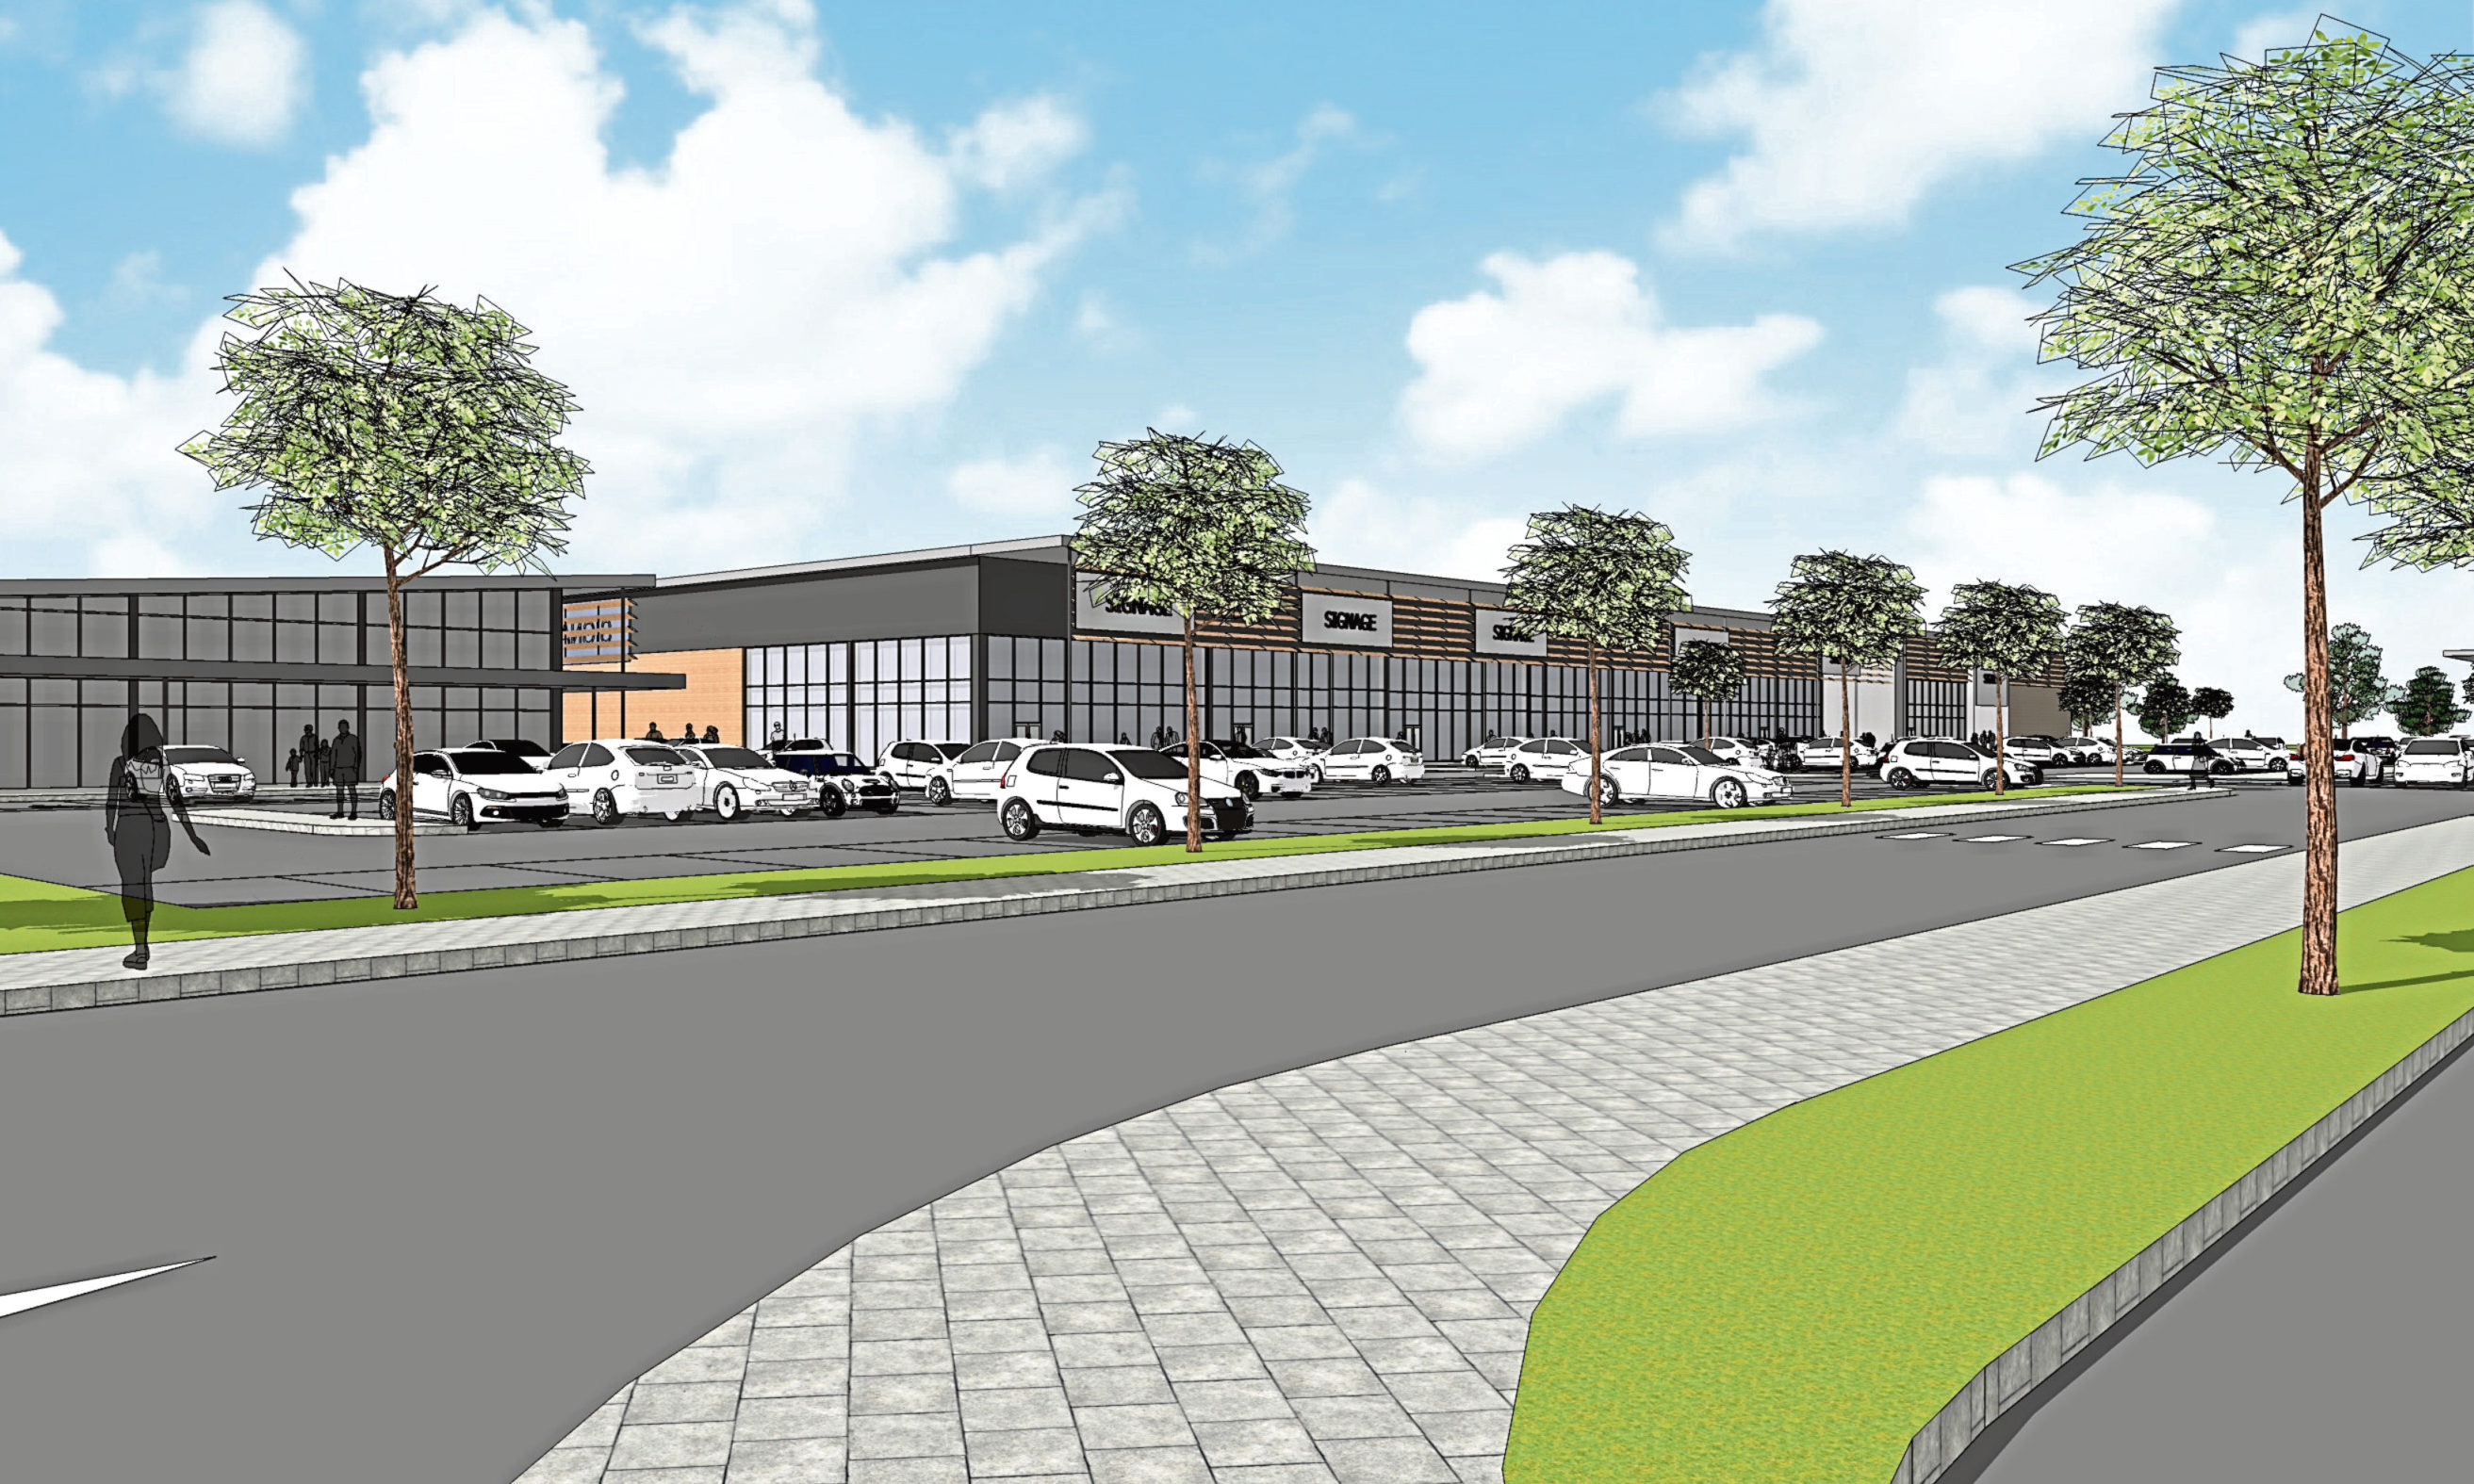 An artist's impression of proposed retail park